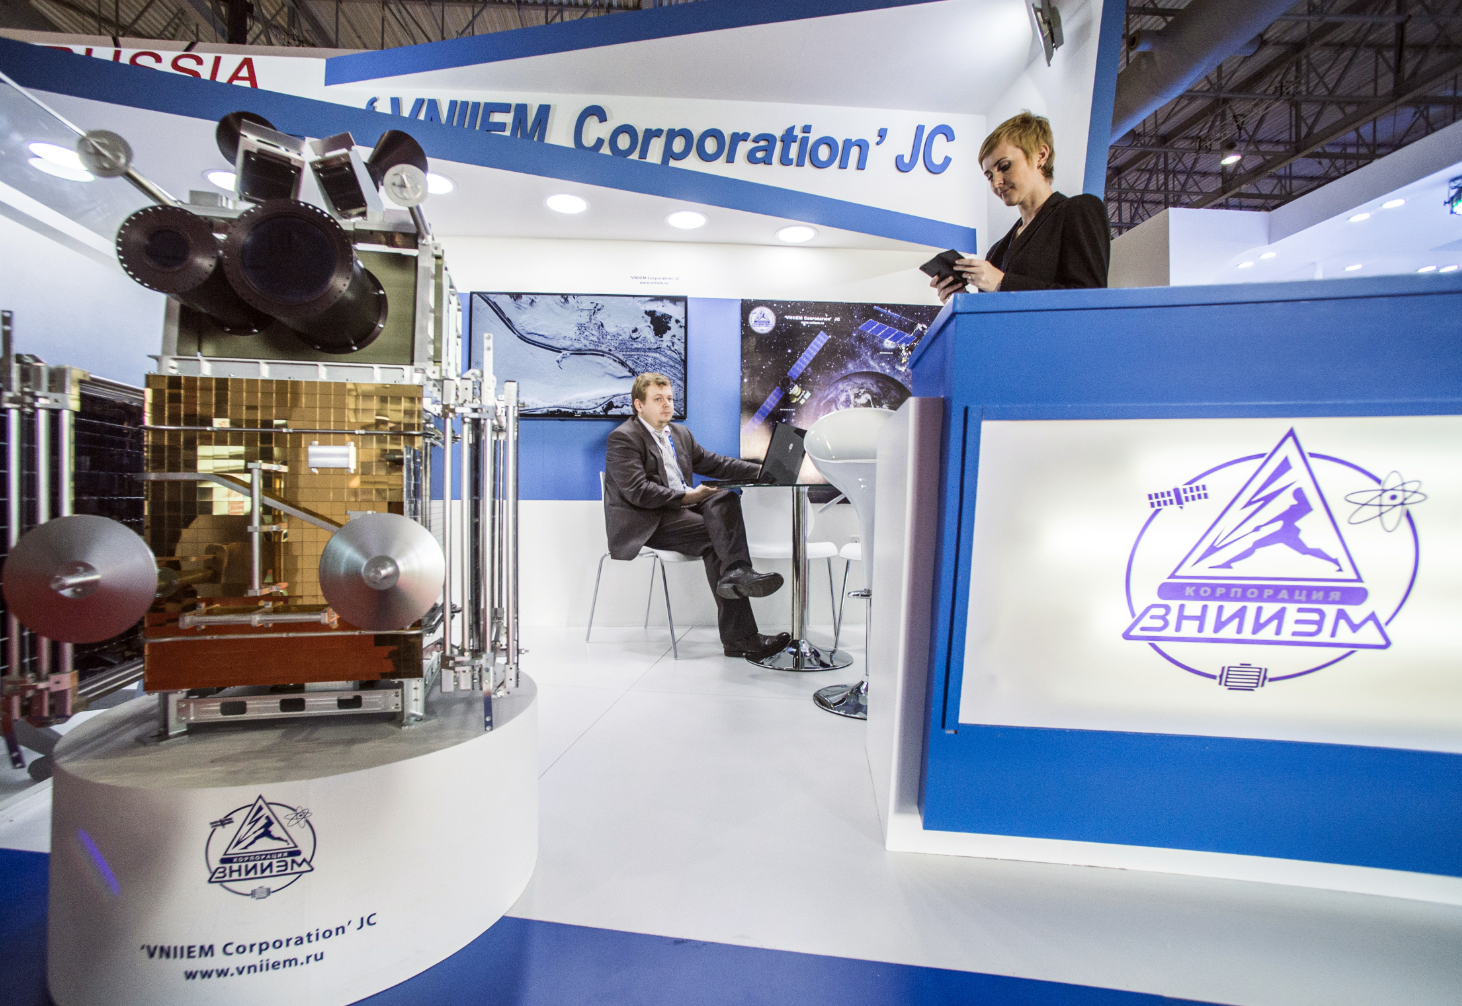 Canopus-B space vehicle mock-up displayed by the VNIIEM Corporation mount at the 2015 Dubai Airshow.